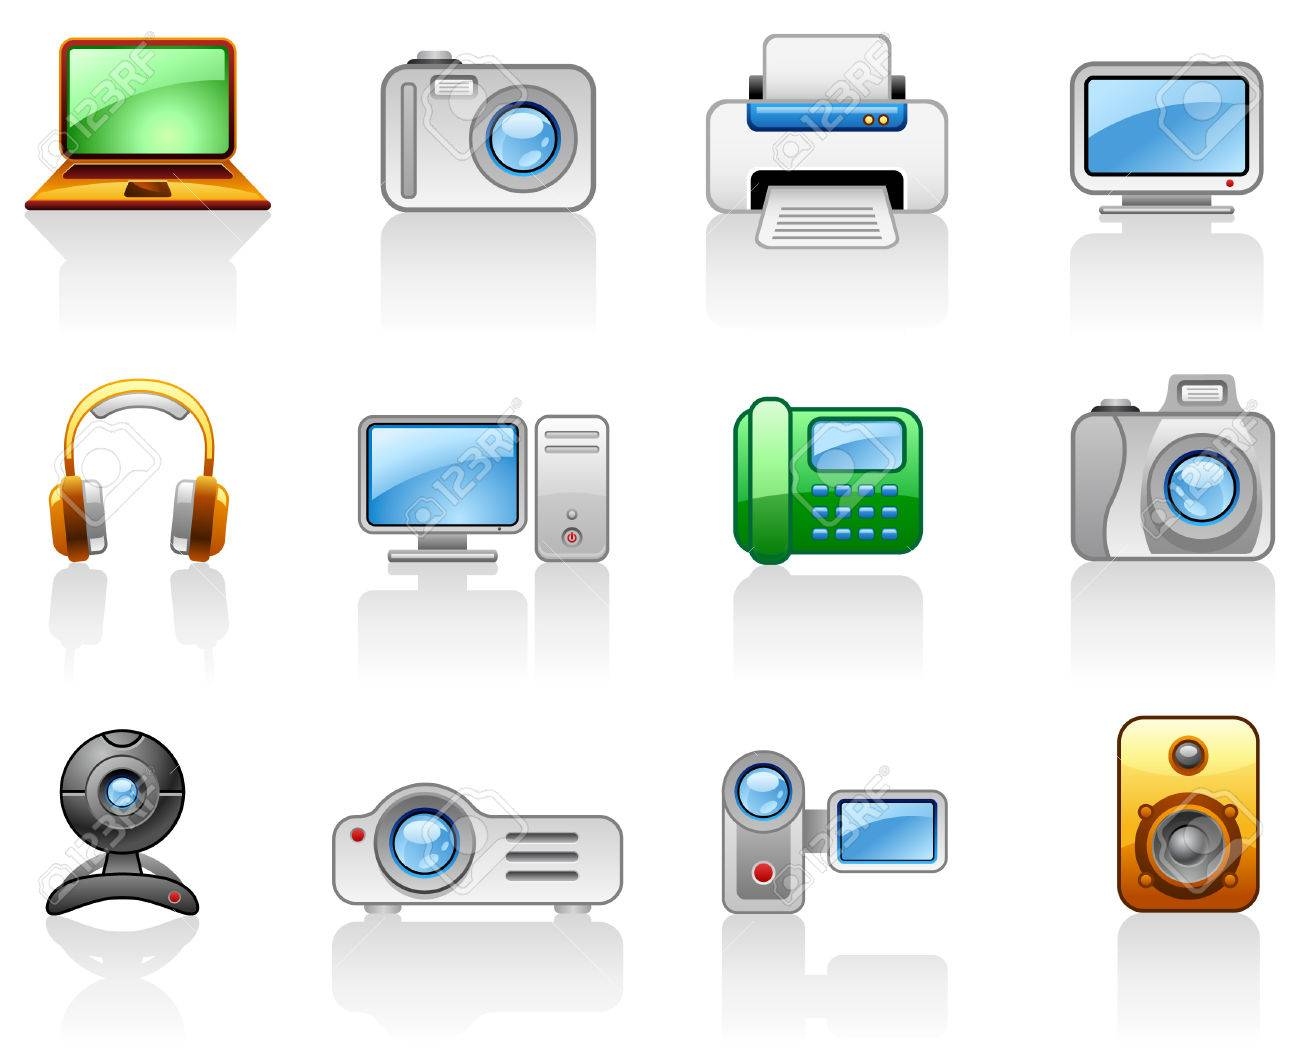 Set of icons on a theme Electronics_Computers_ Multimedia Stock Vector - 5612474